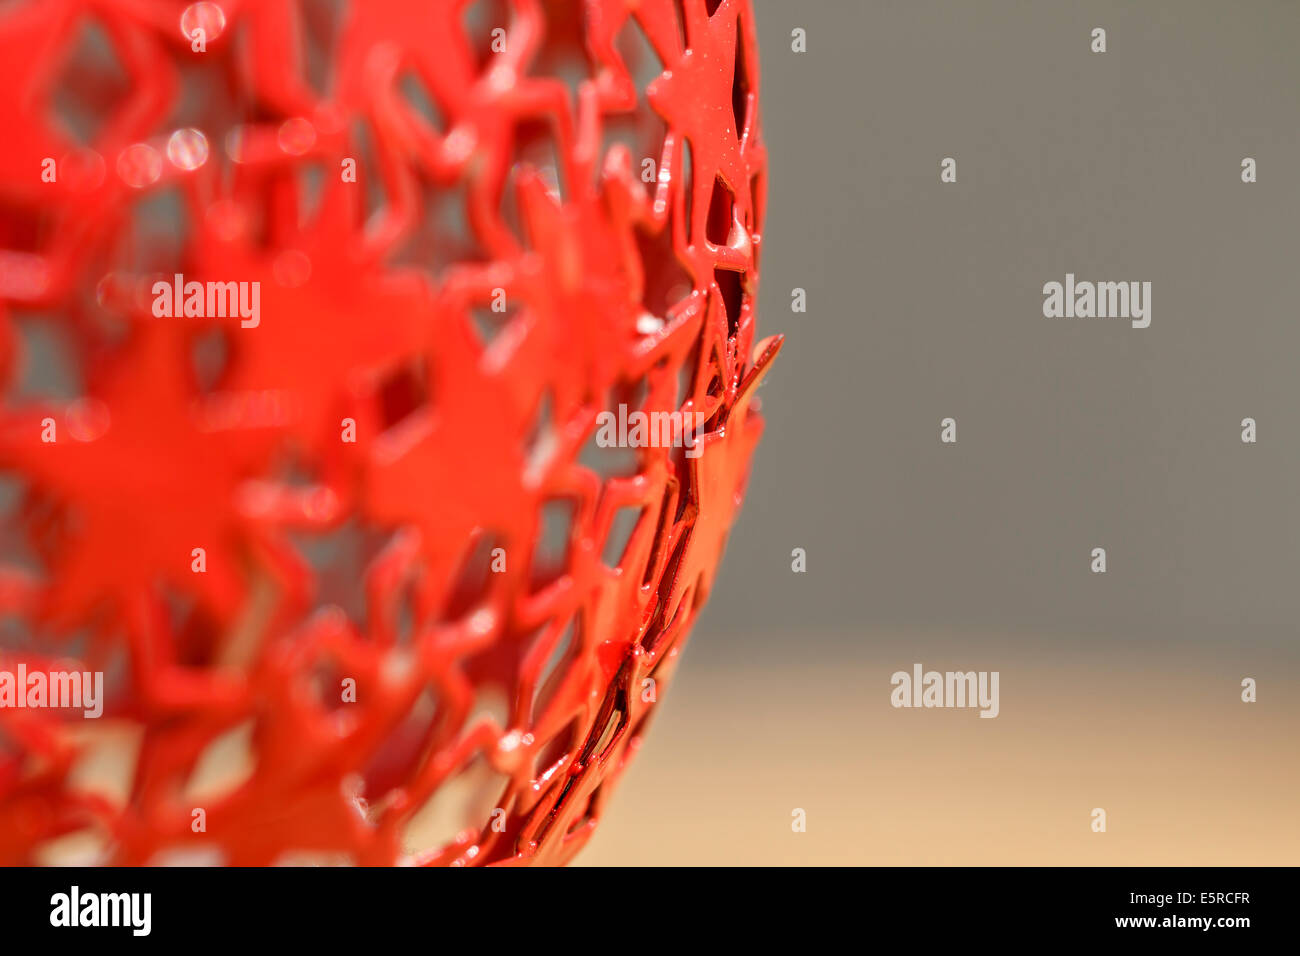 abstract art red color - Stock Image